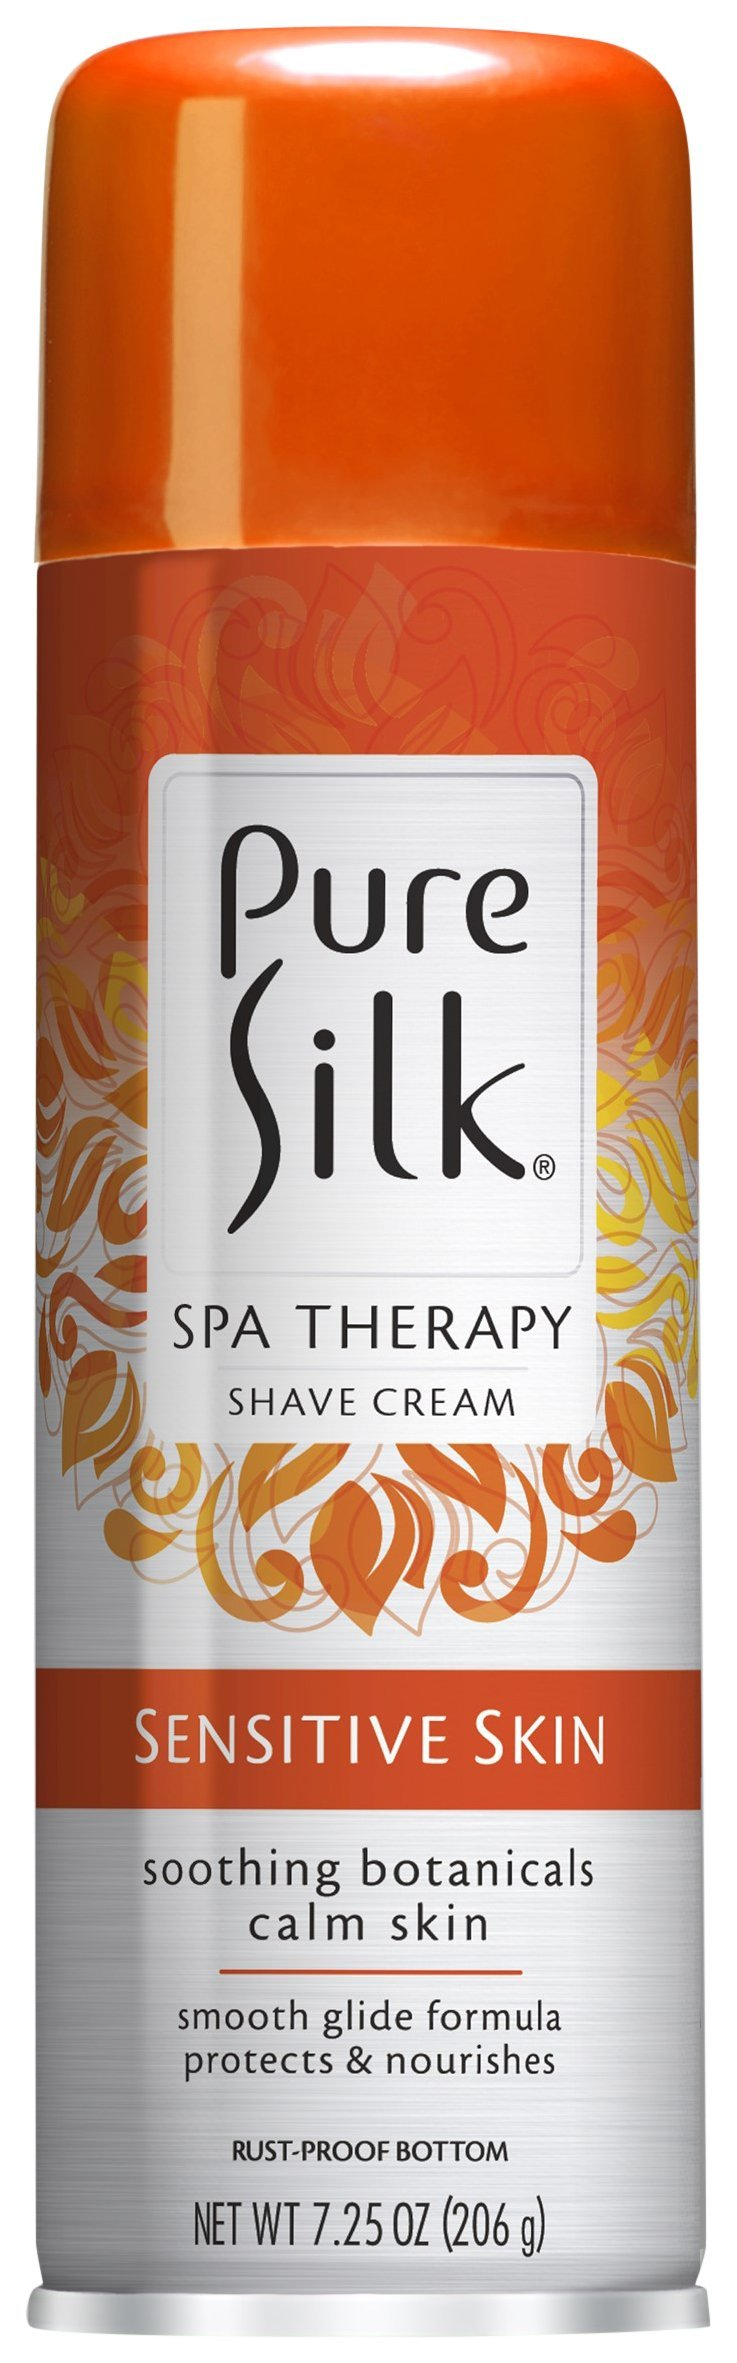 Pure Silk Sensitive Skin Spa Therapy Shaving Cream for Women (Travel Size, TSA-Approved), 2.85 ounces (Pack of 12)